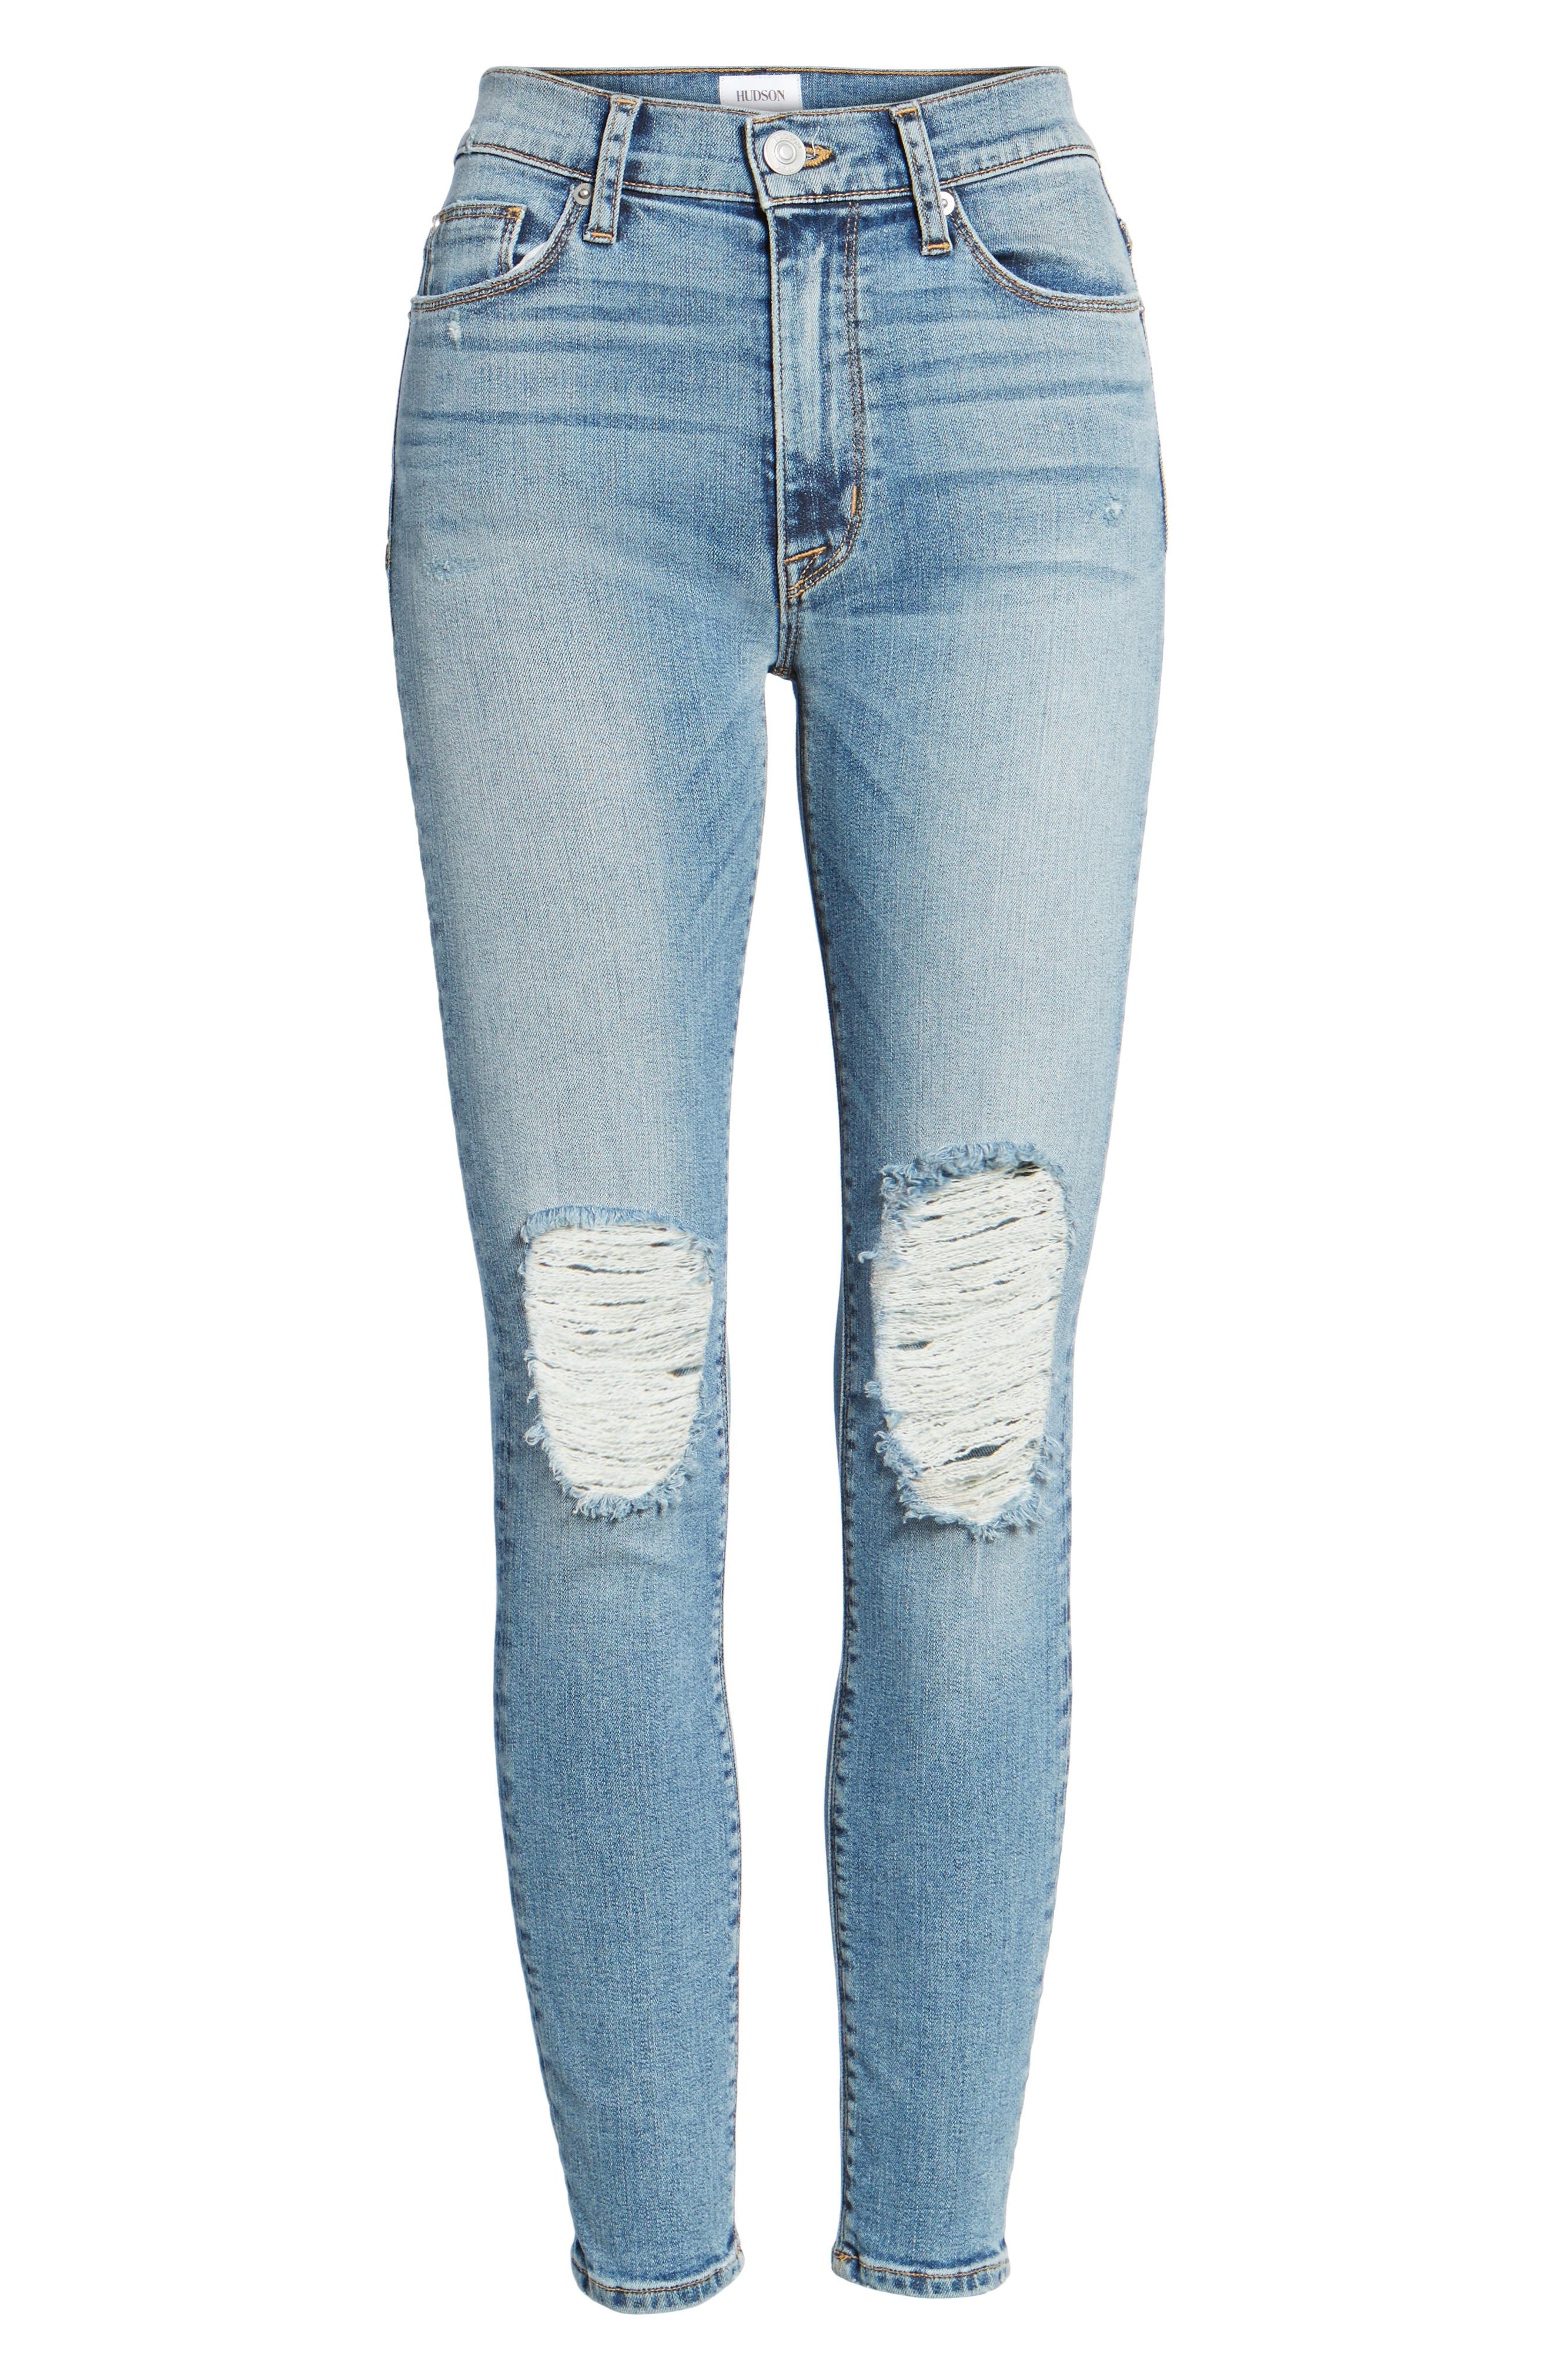 Barbara High Waist Ankle Skinny Jeans,                             Alternate thumbnail 6, color,                             Confection